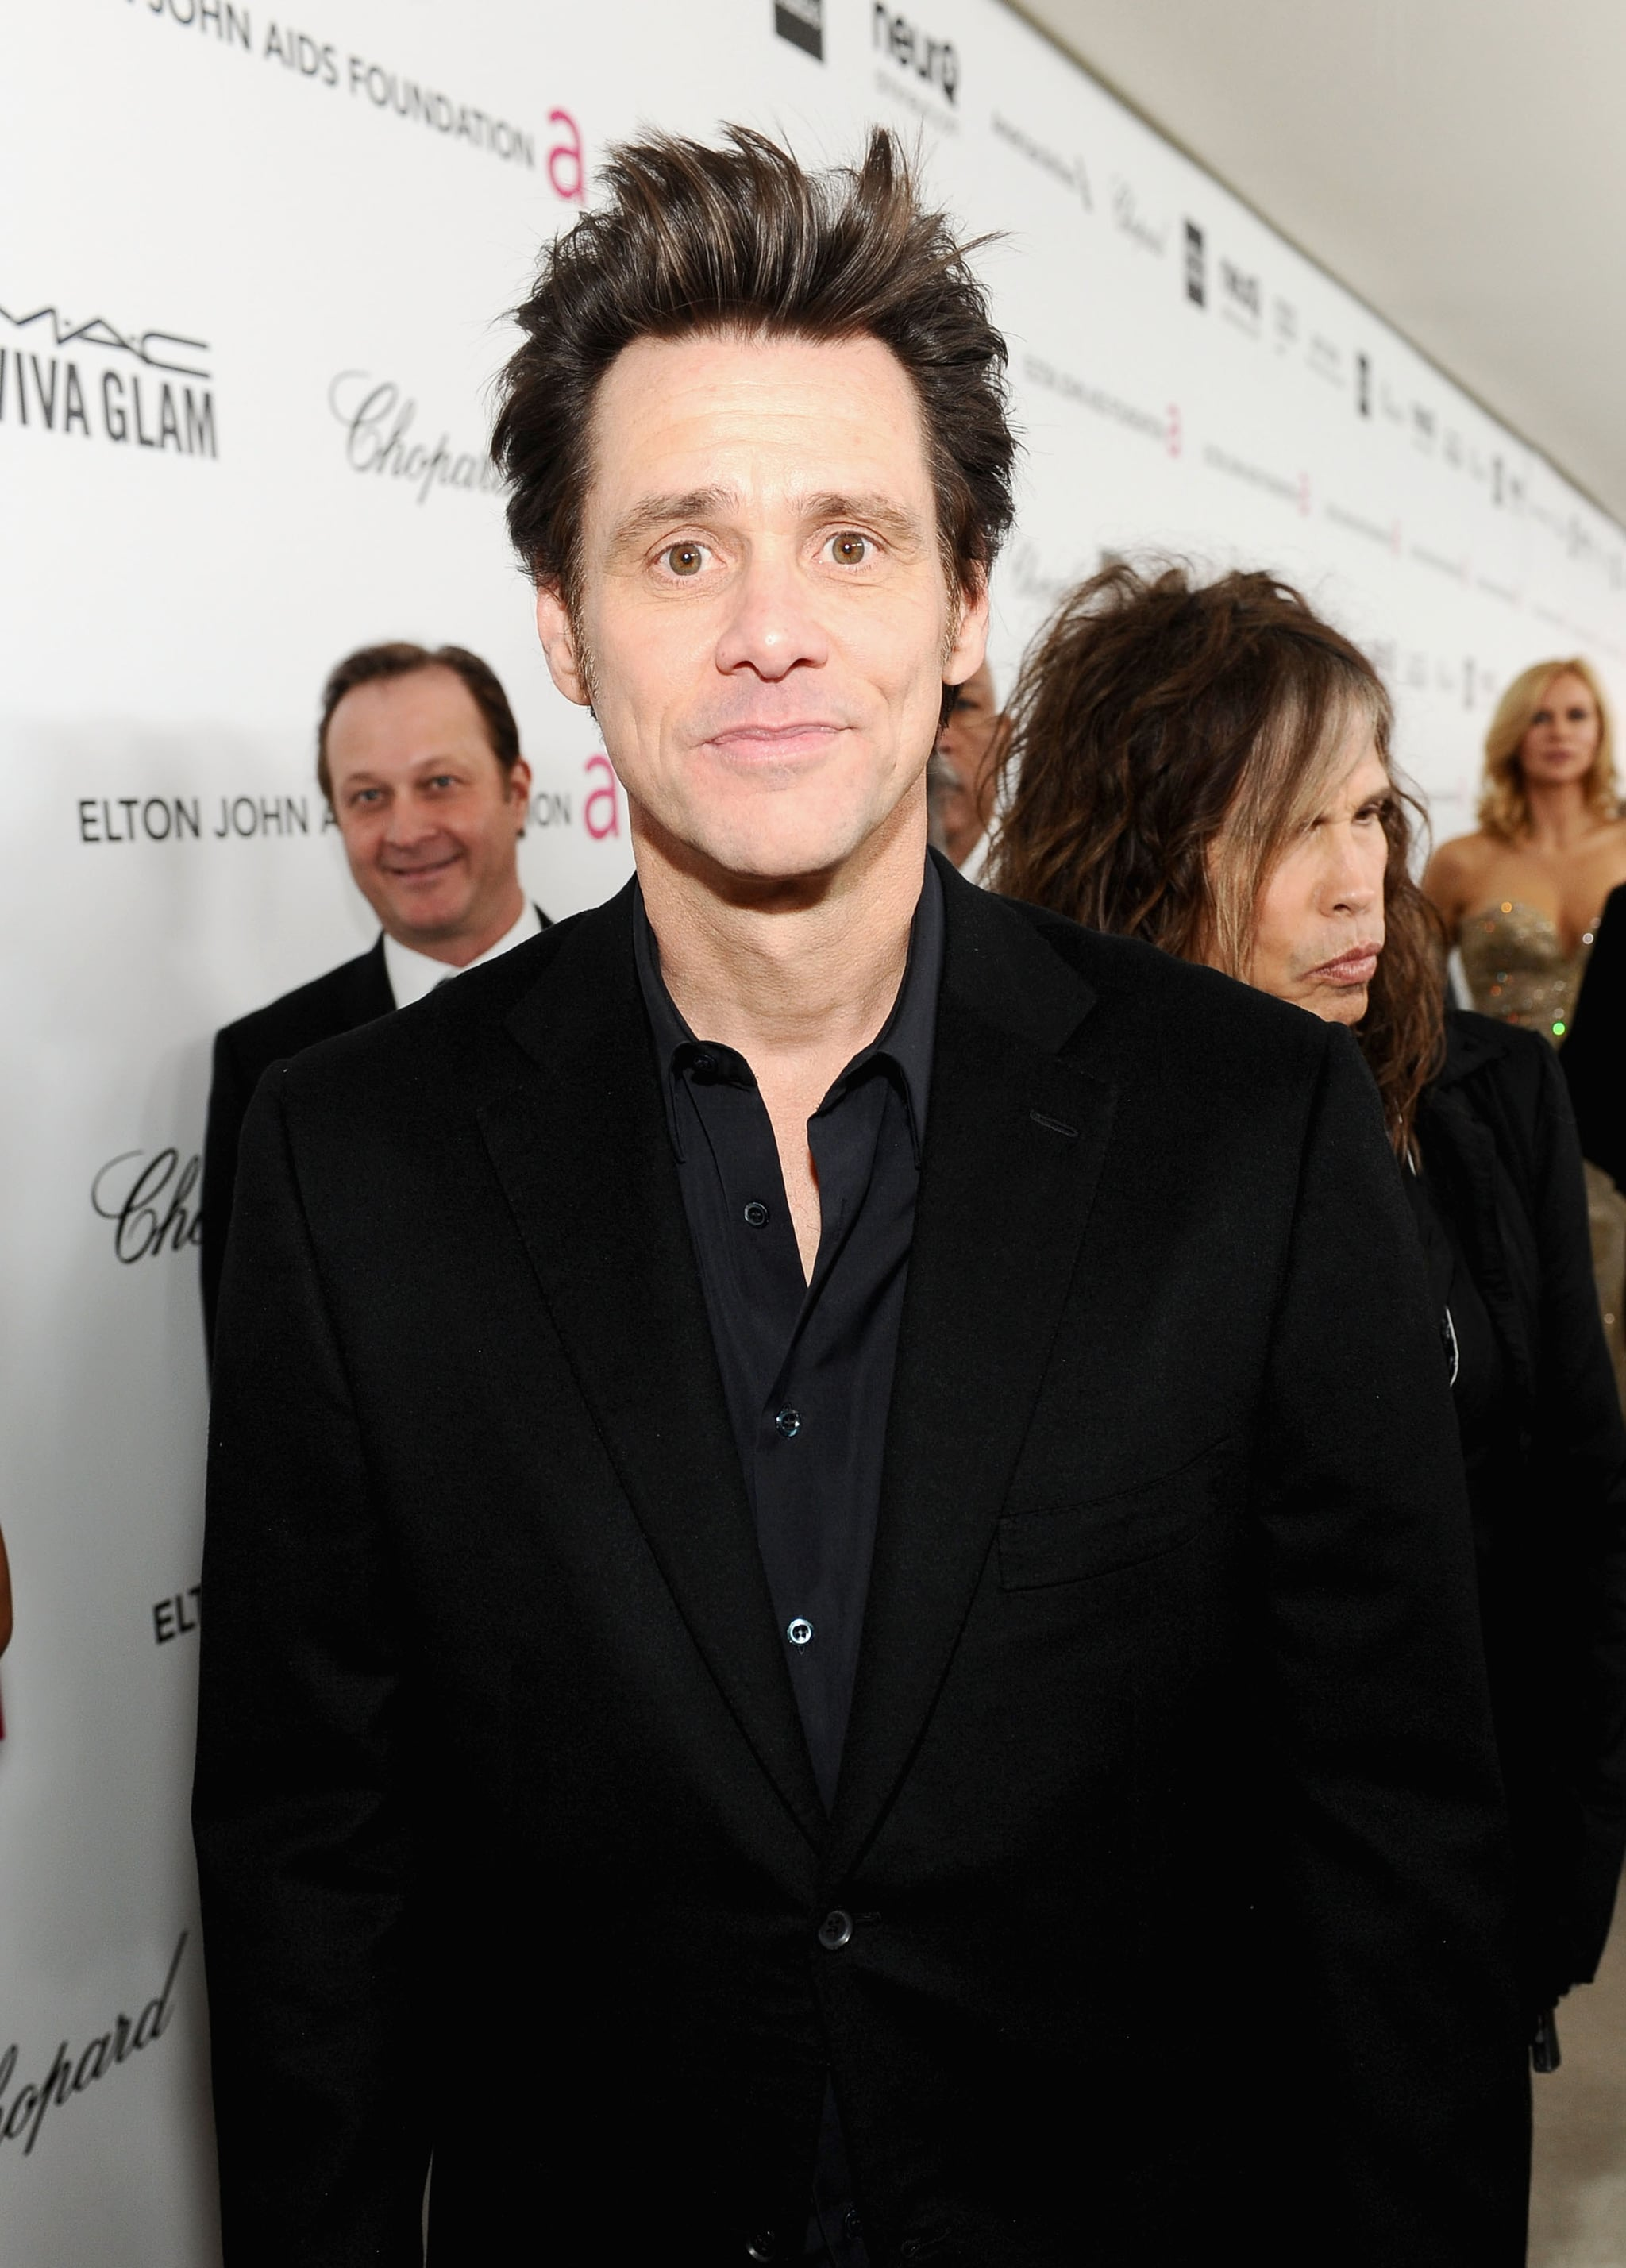 Jim Carrey smiled on his way into Elton John's Oscar party in LA.